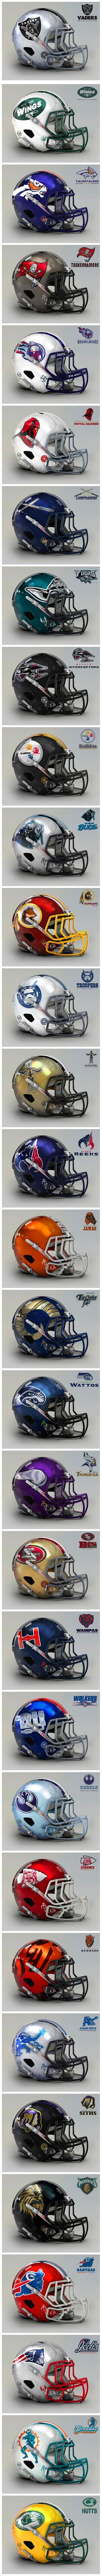 Sports Discover If all 32 NFL teams existed in the Star Wars universe here is what the helmets might look like. Nfl Memes, Football Memes, Sports Memes, Sports Logos, Funny Memes, Nfl Football Helmets, Football Uniforms, Seahawks, 32 Nfl Teams